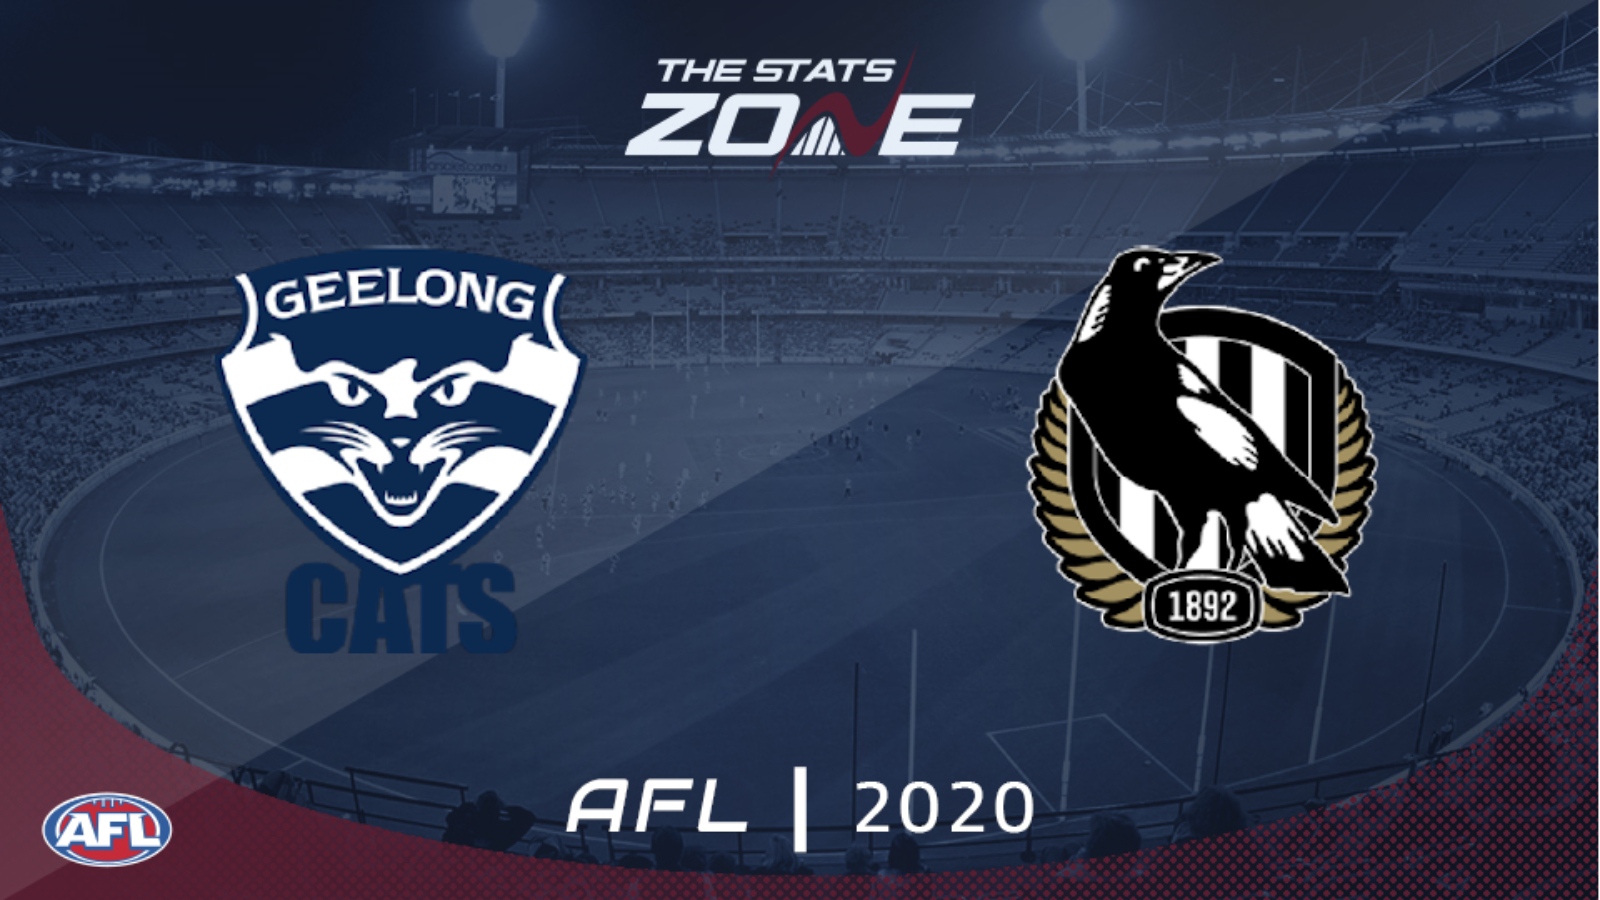 2020 Afl Geelong Cats Vs Collingwood Preview Prediction The Stats Zone